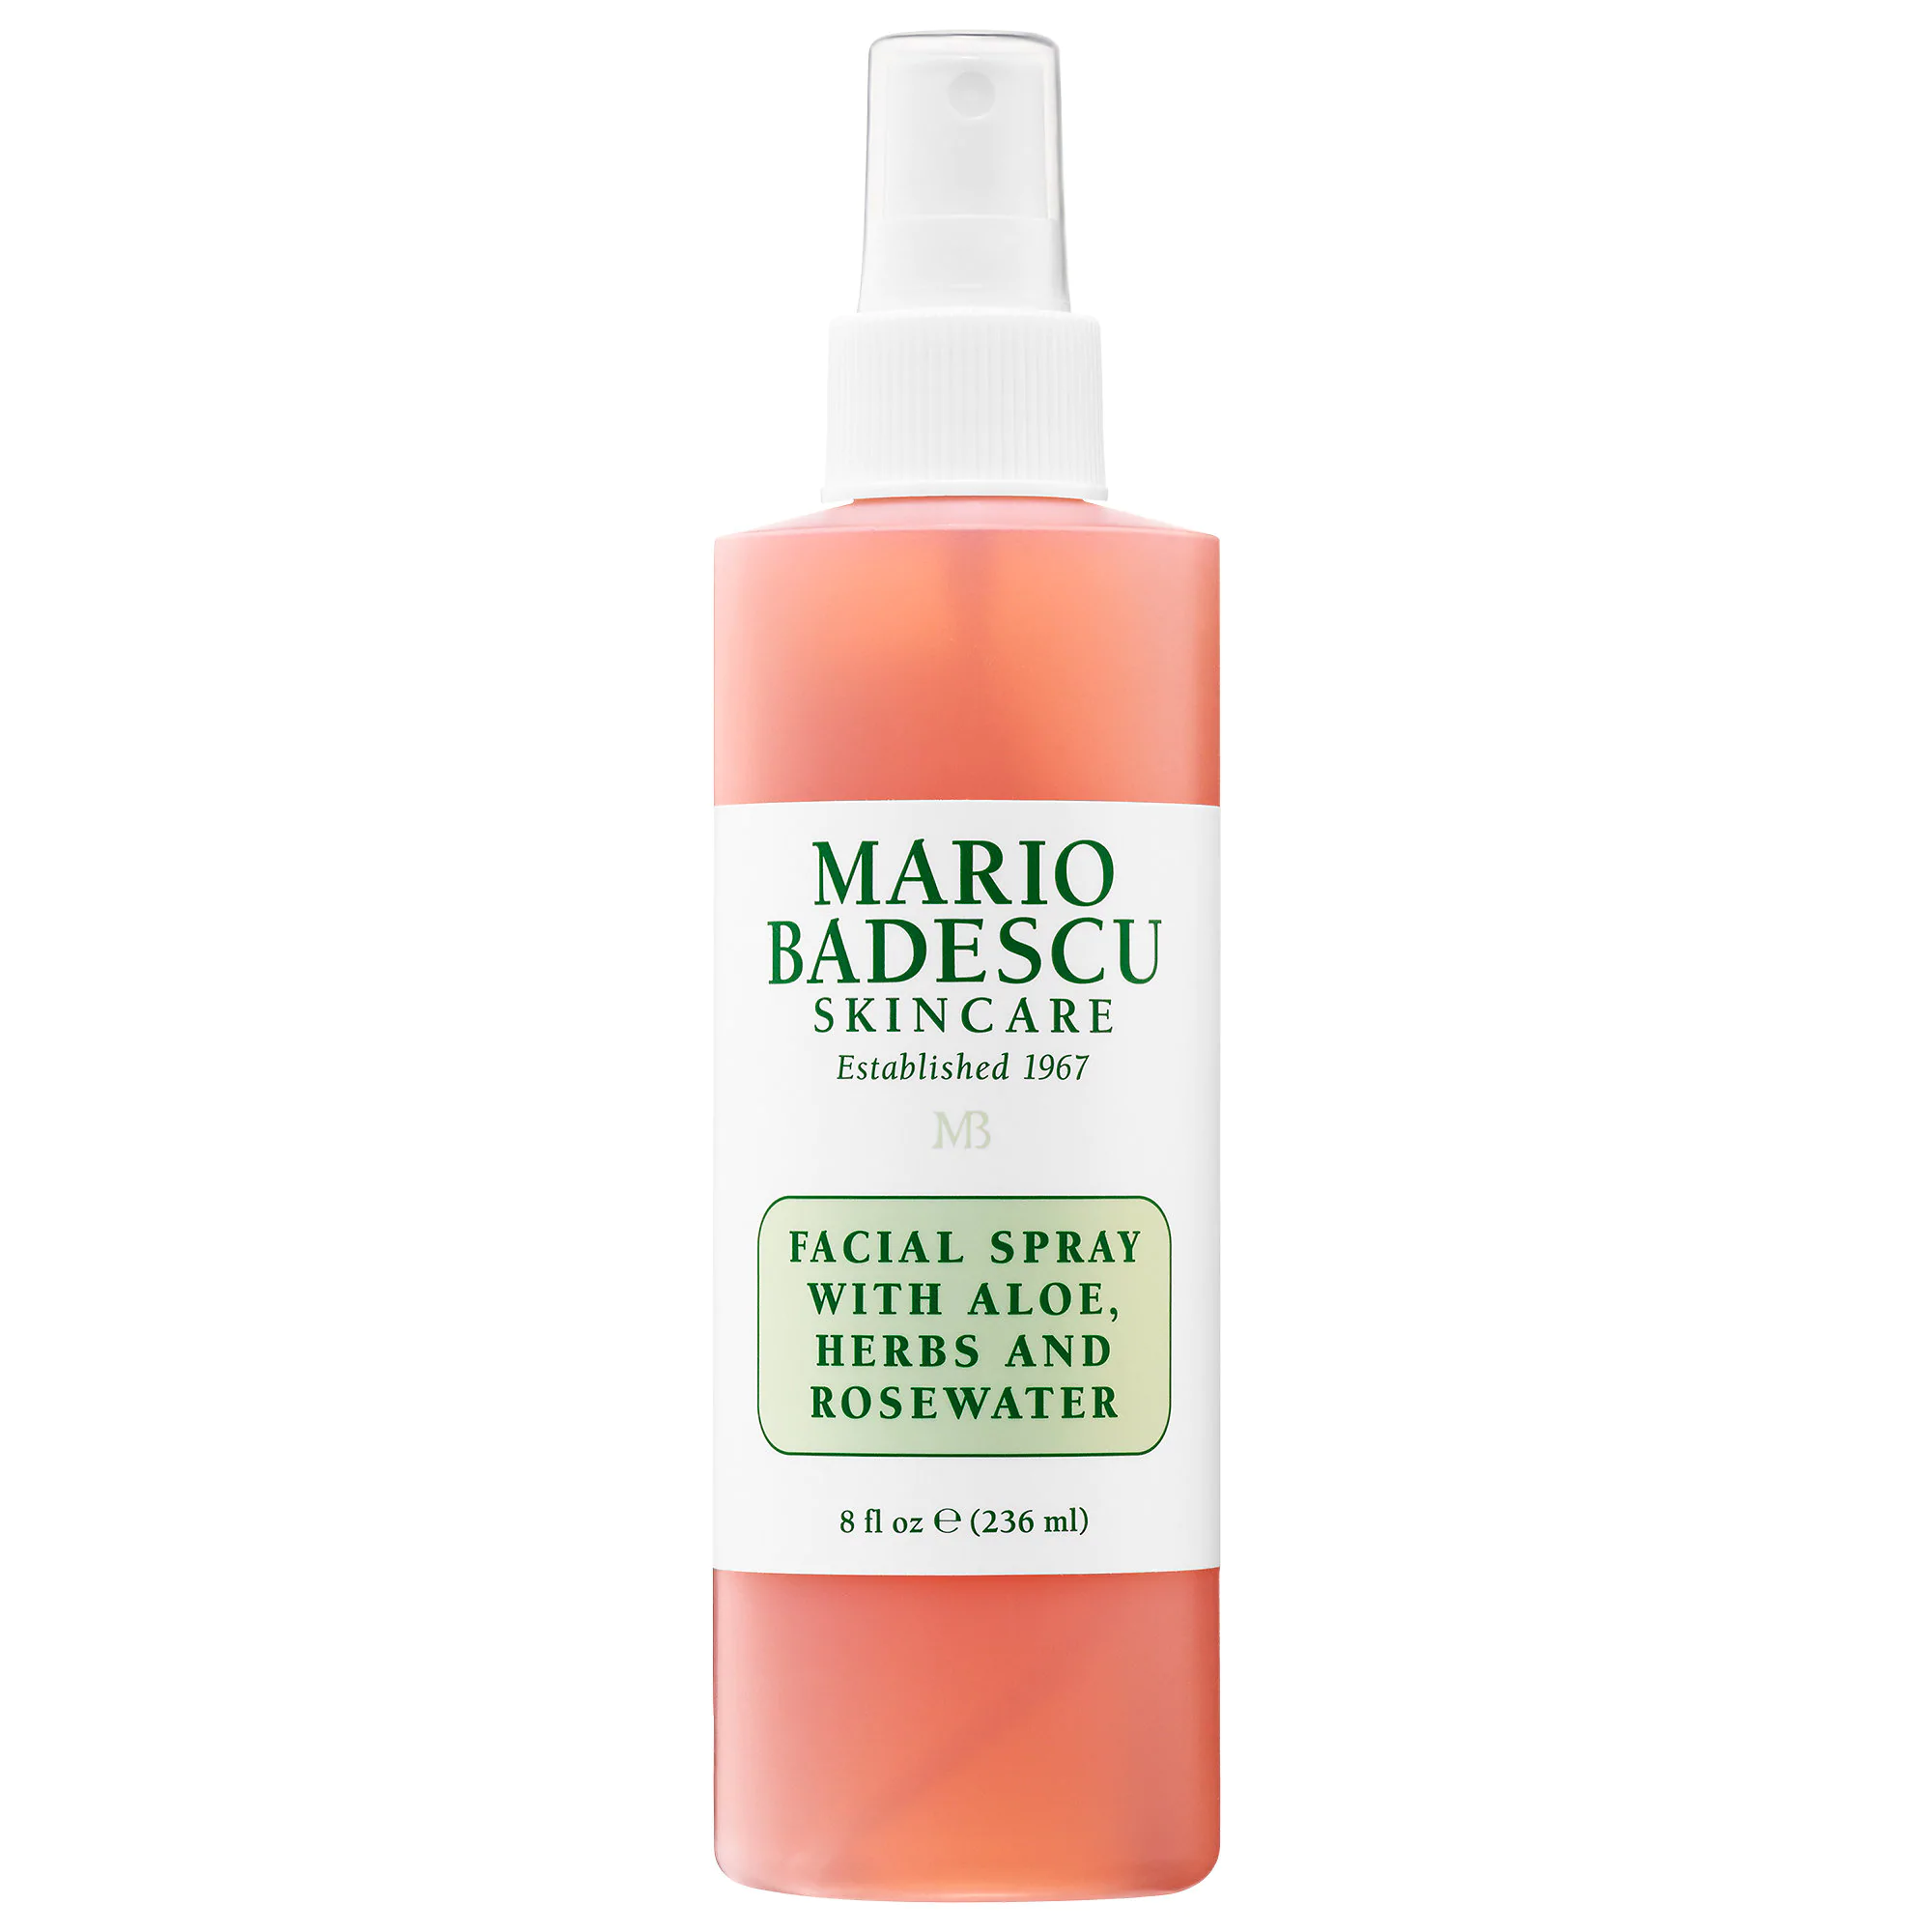 Mario Badescu-Facial Spray With Aloe, Herbs And Rosewater